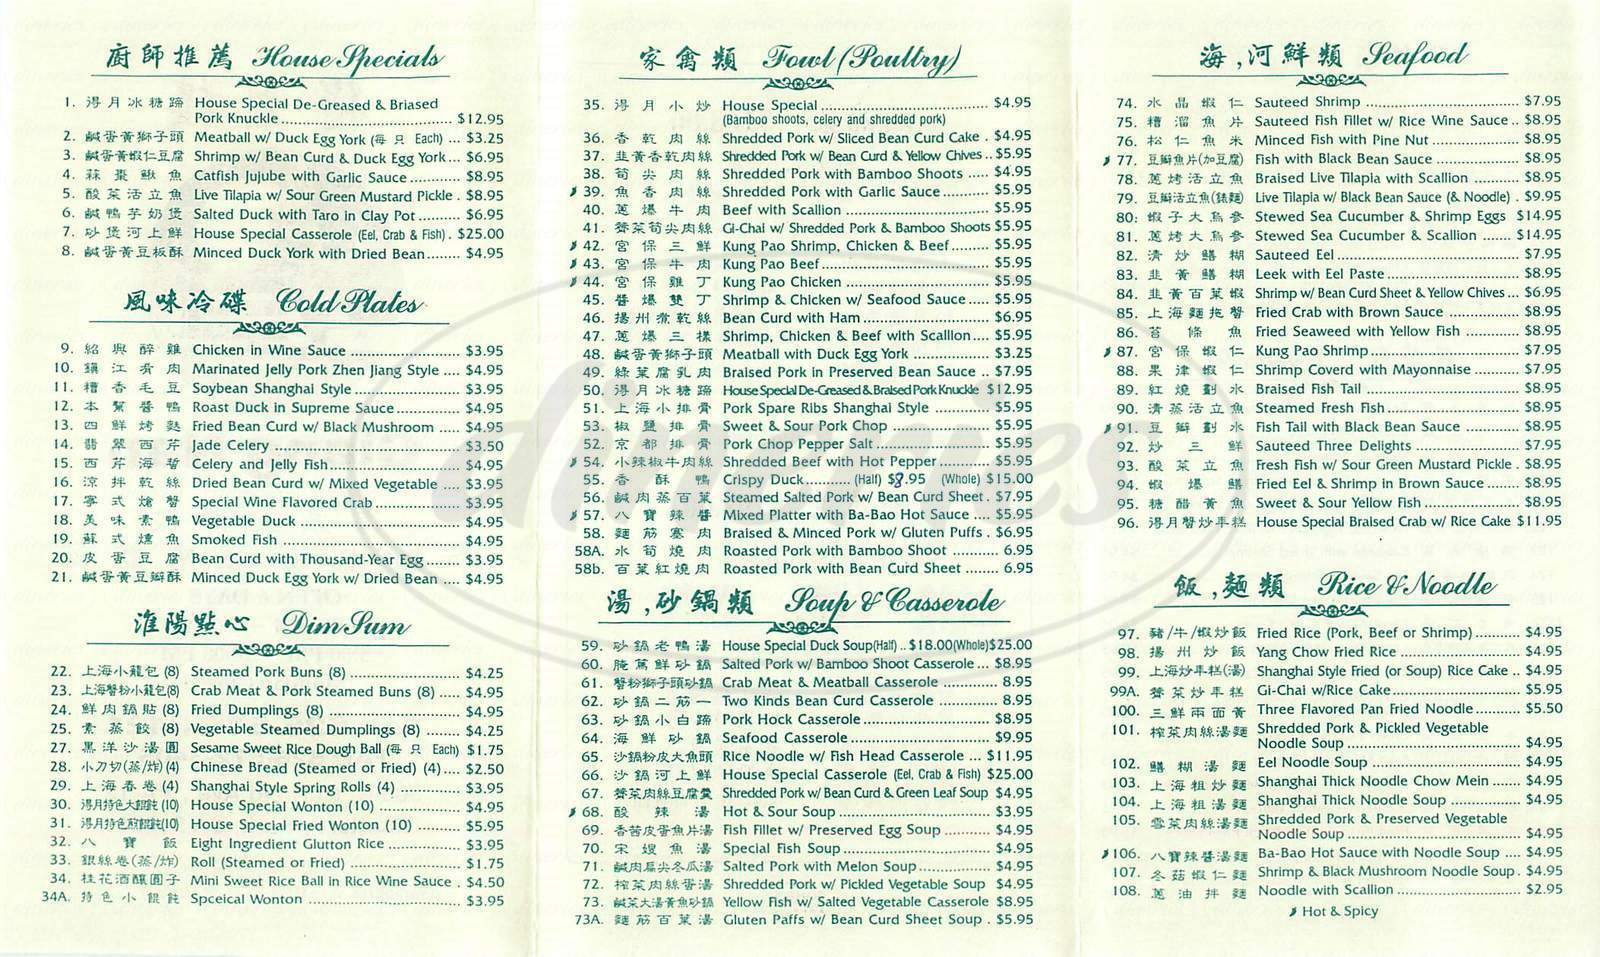 menu for Giang Nan